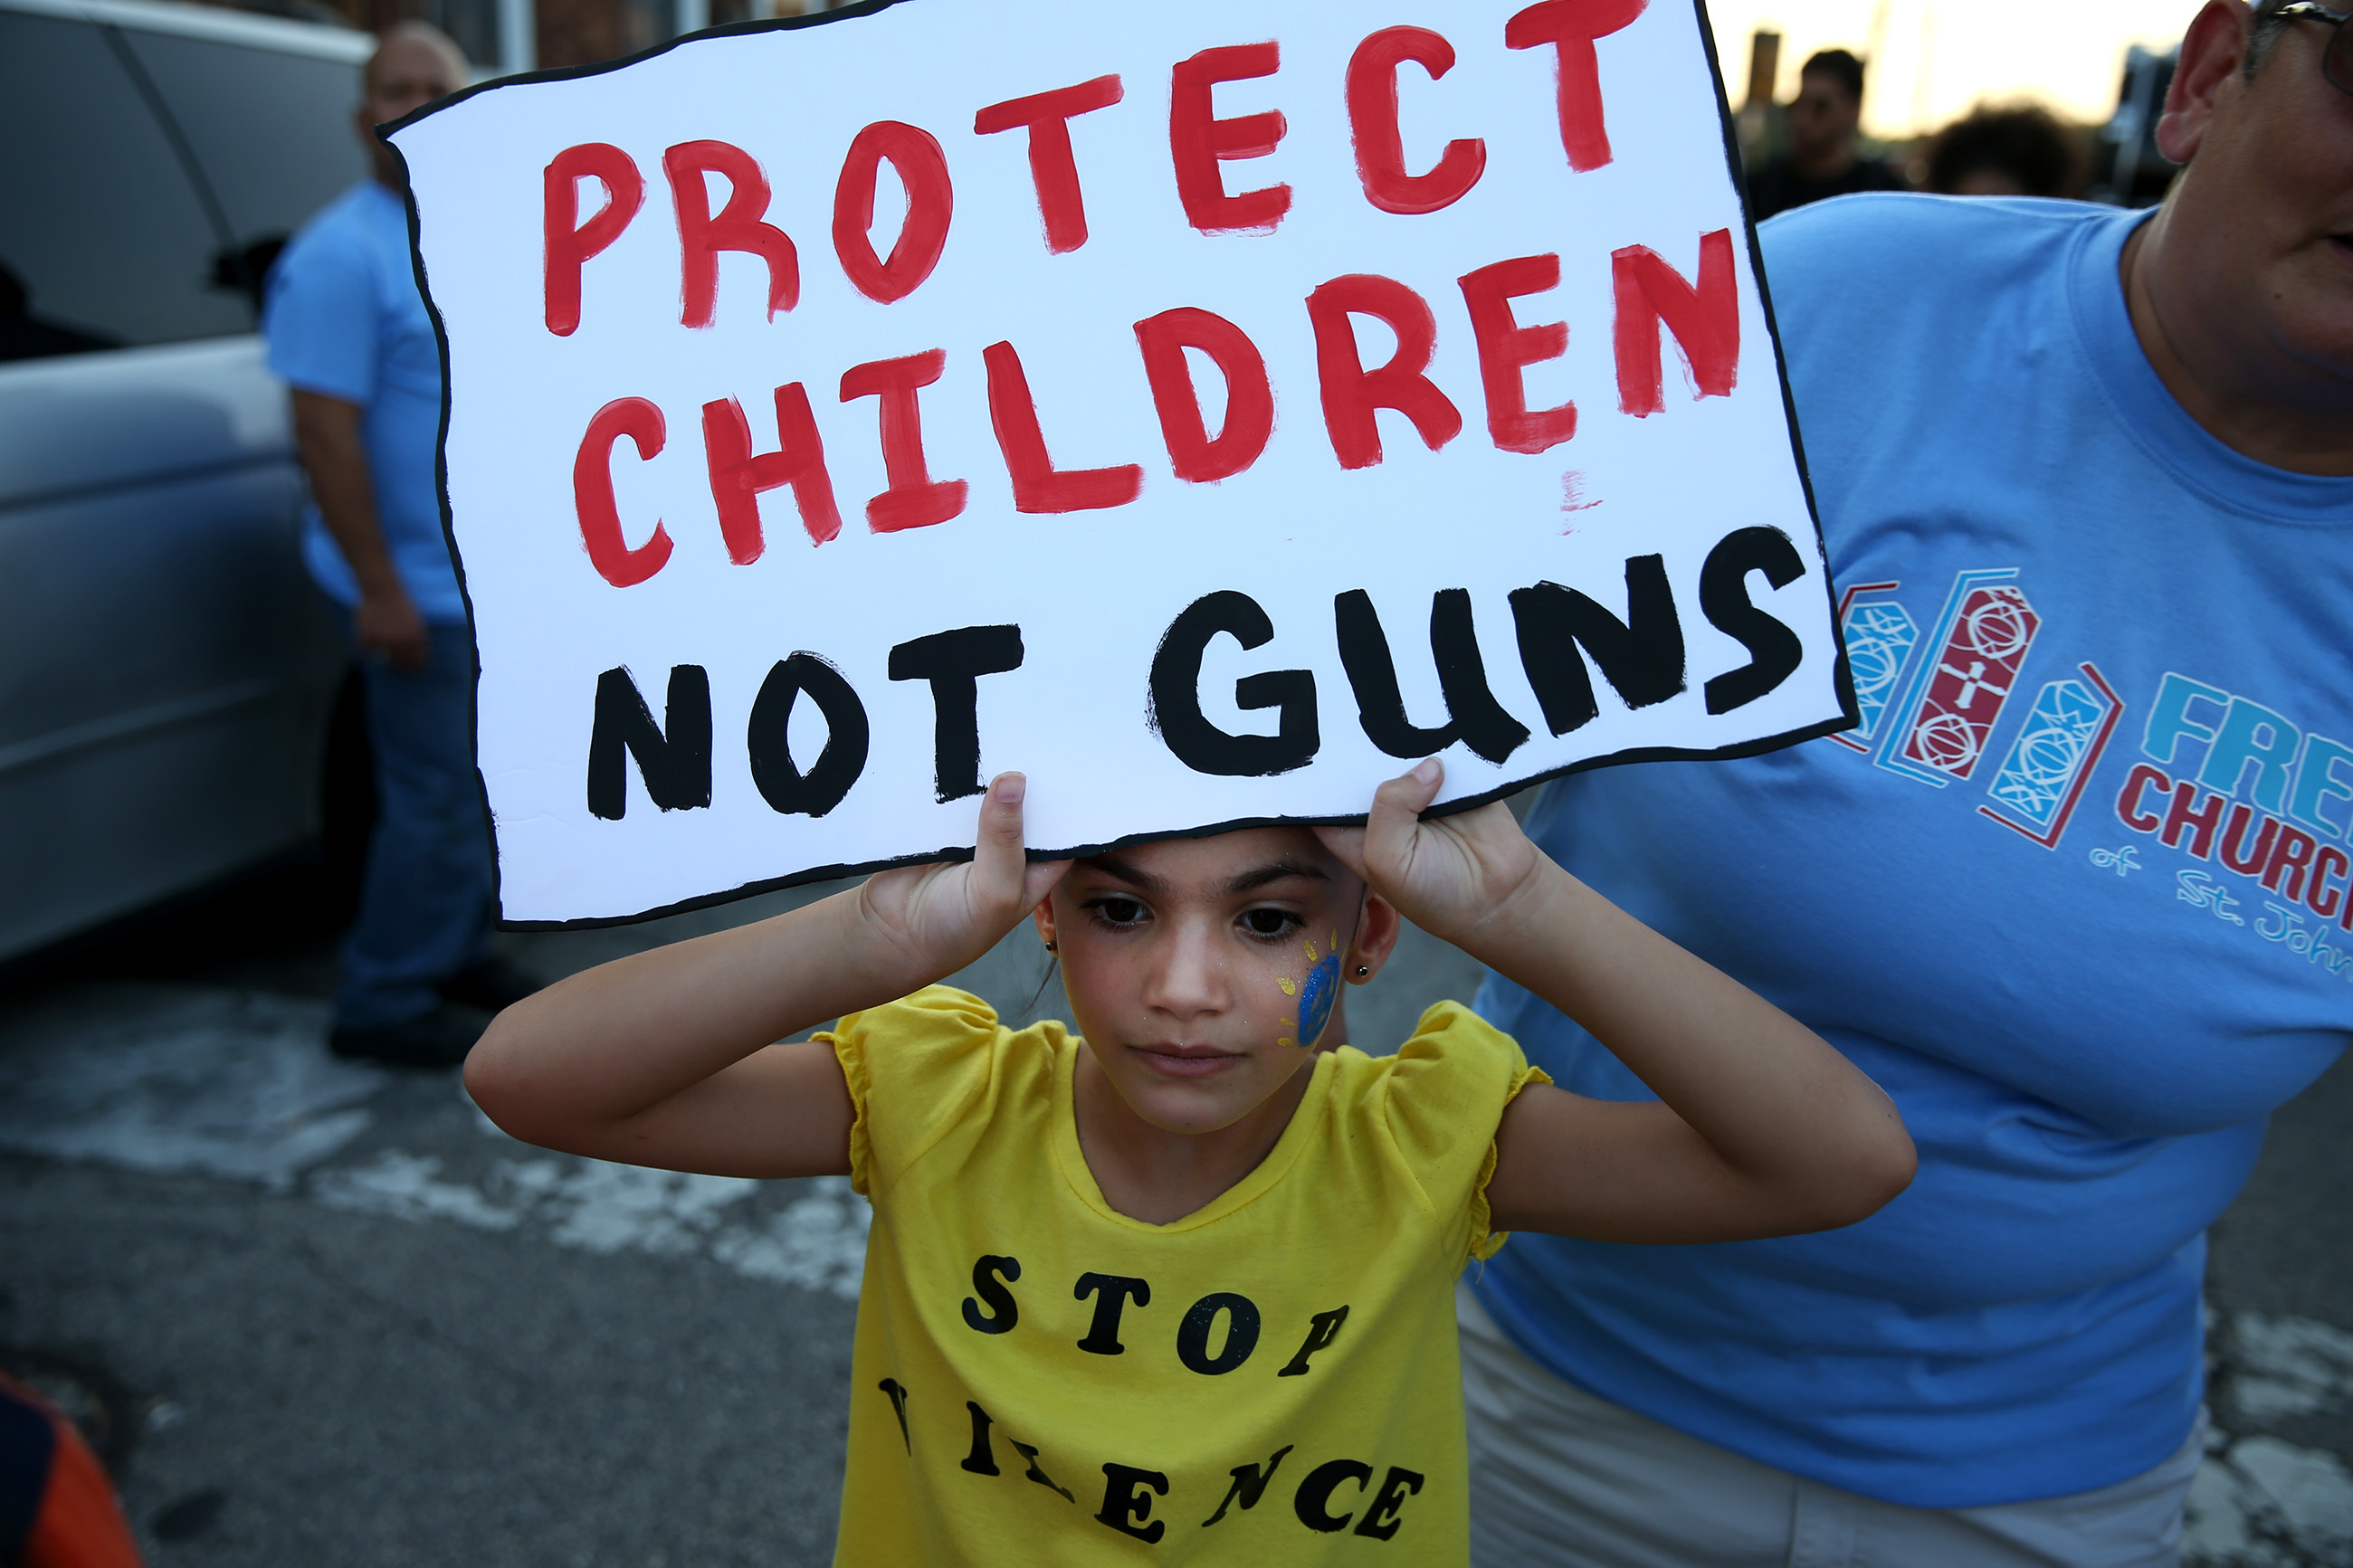 Rianna Perez, 7, a member of the Free Church of St. John, holds up a sign during the Kensington Interfaith Peace March in Philadelphia on Aug. 19, 2017. DAVID MAIALETTI / Staff Photographer